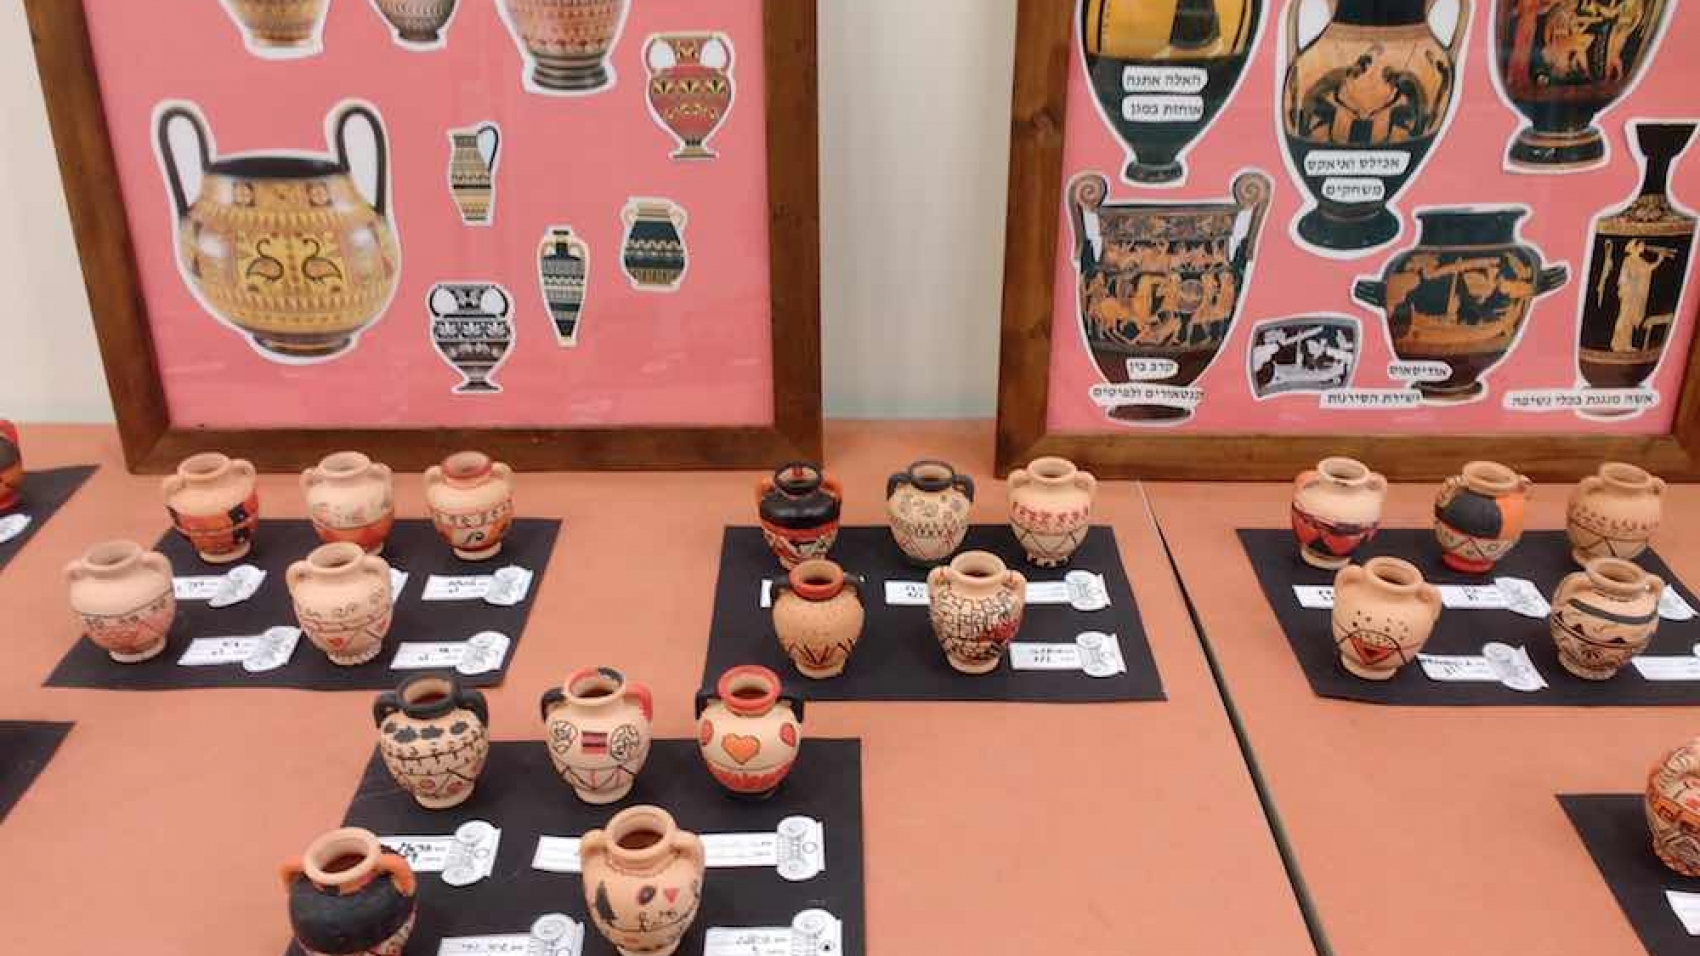 Greek mini urns made by sixth graders against a backdrop of posters showing classic Greek pottery techniques.